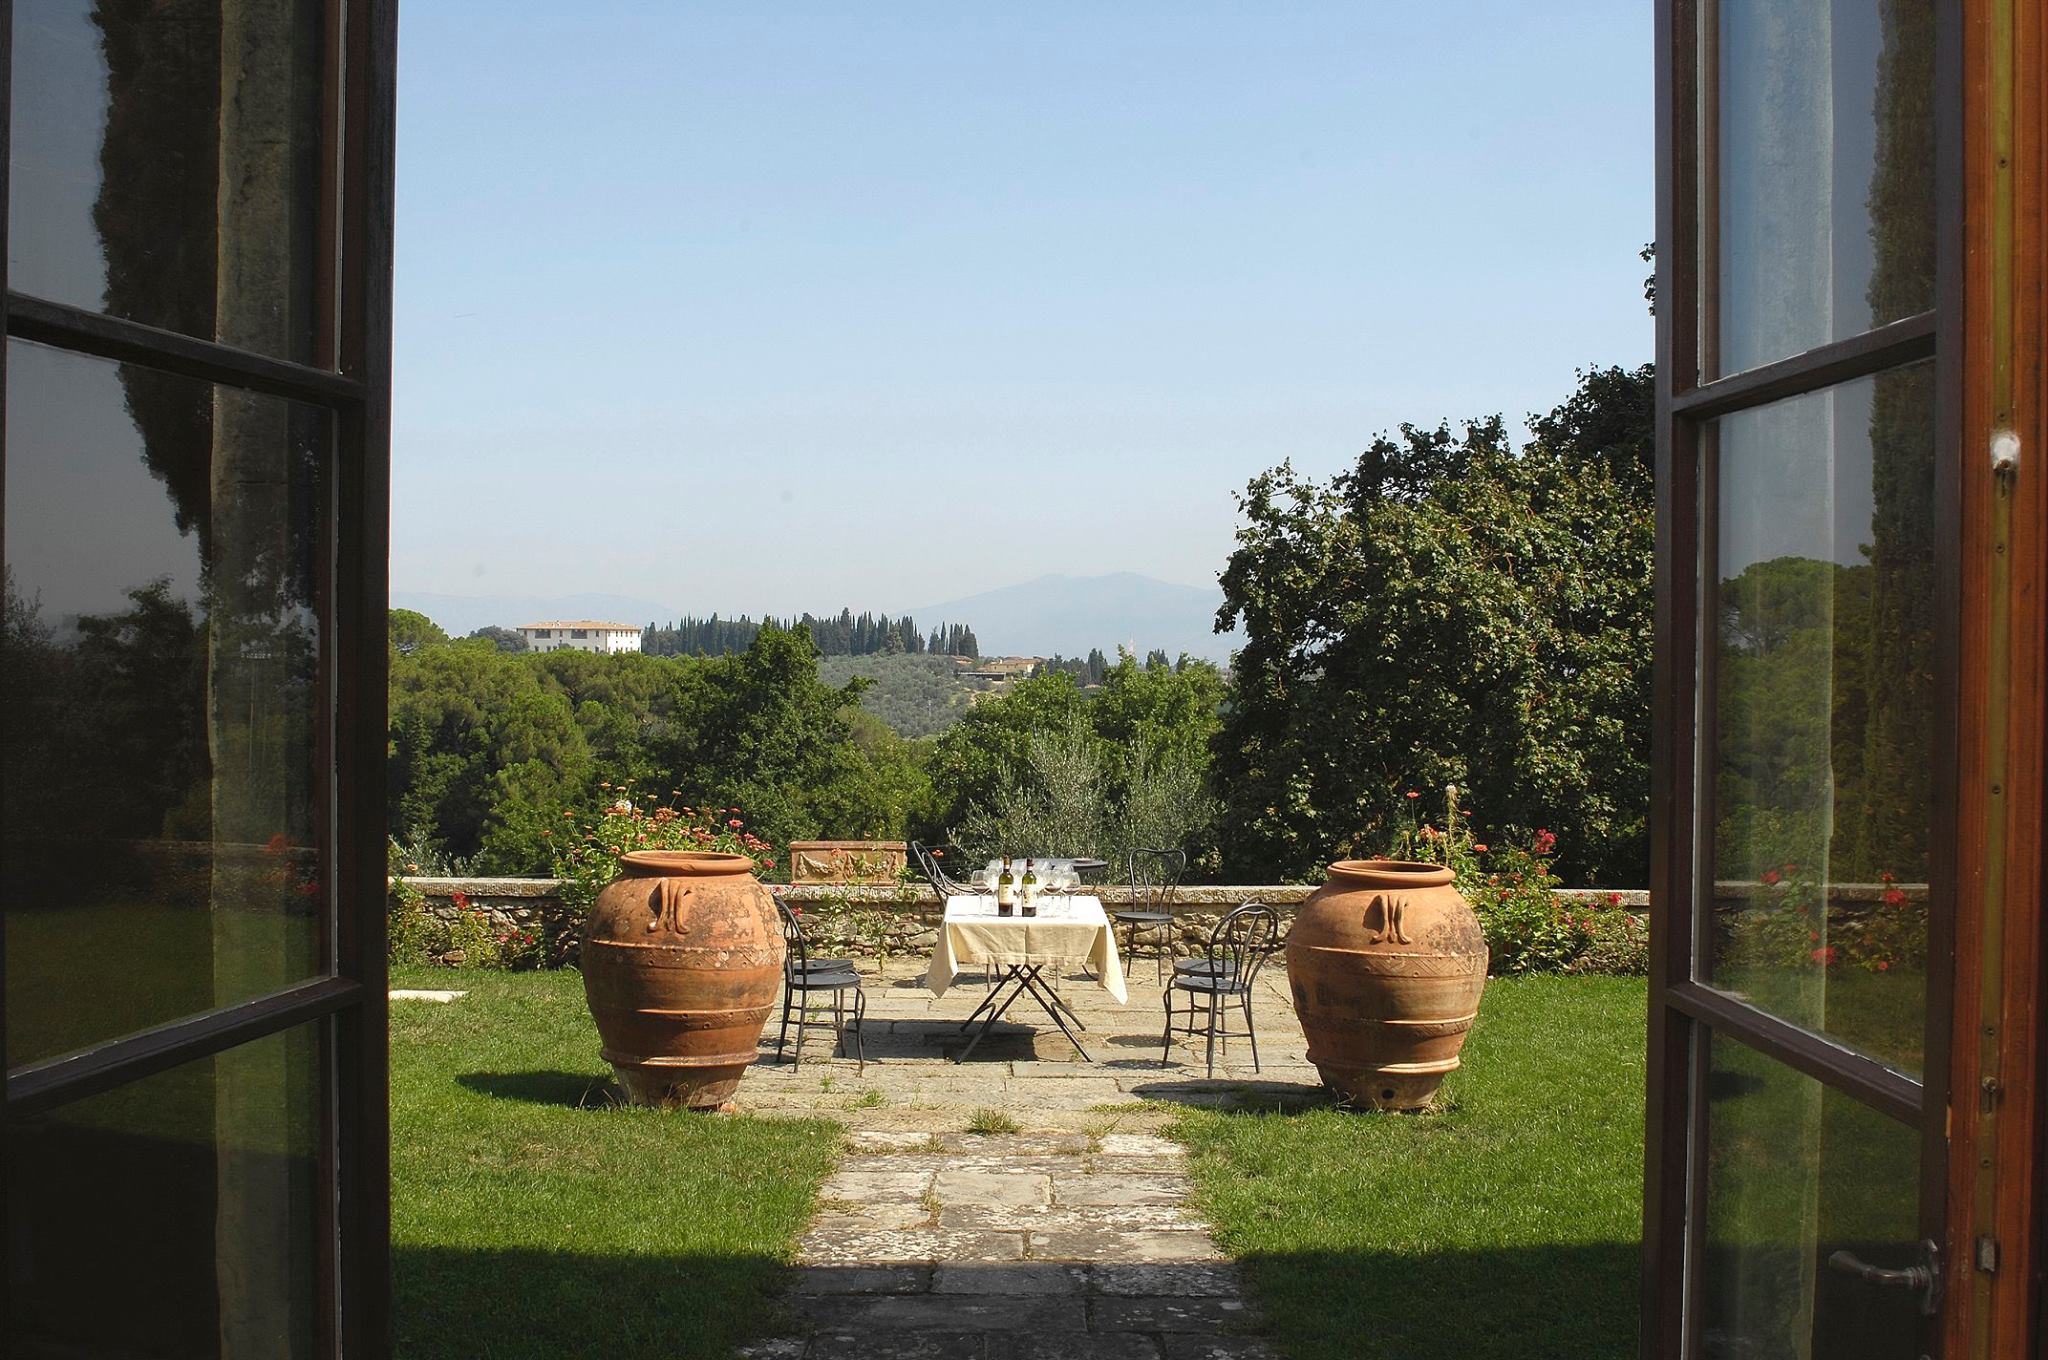 Tables for wine tasting and two large amphoras in Fattoria Montanine winery.